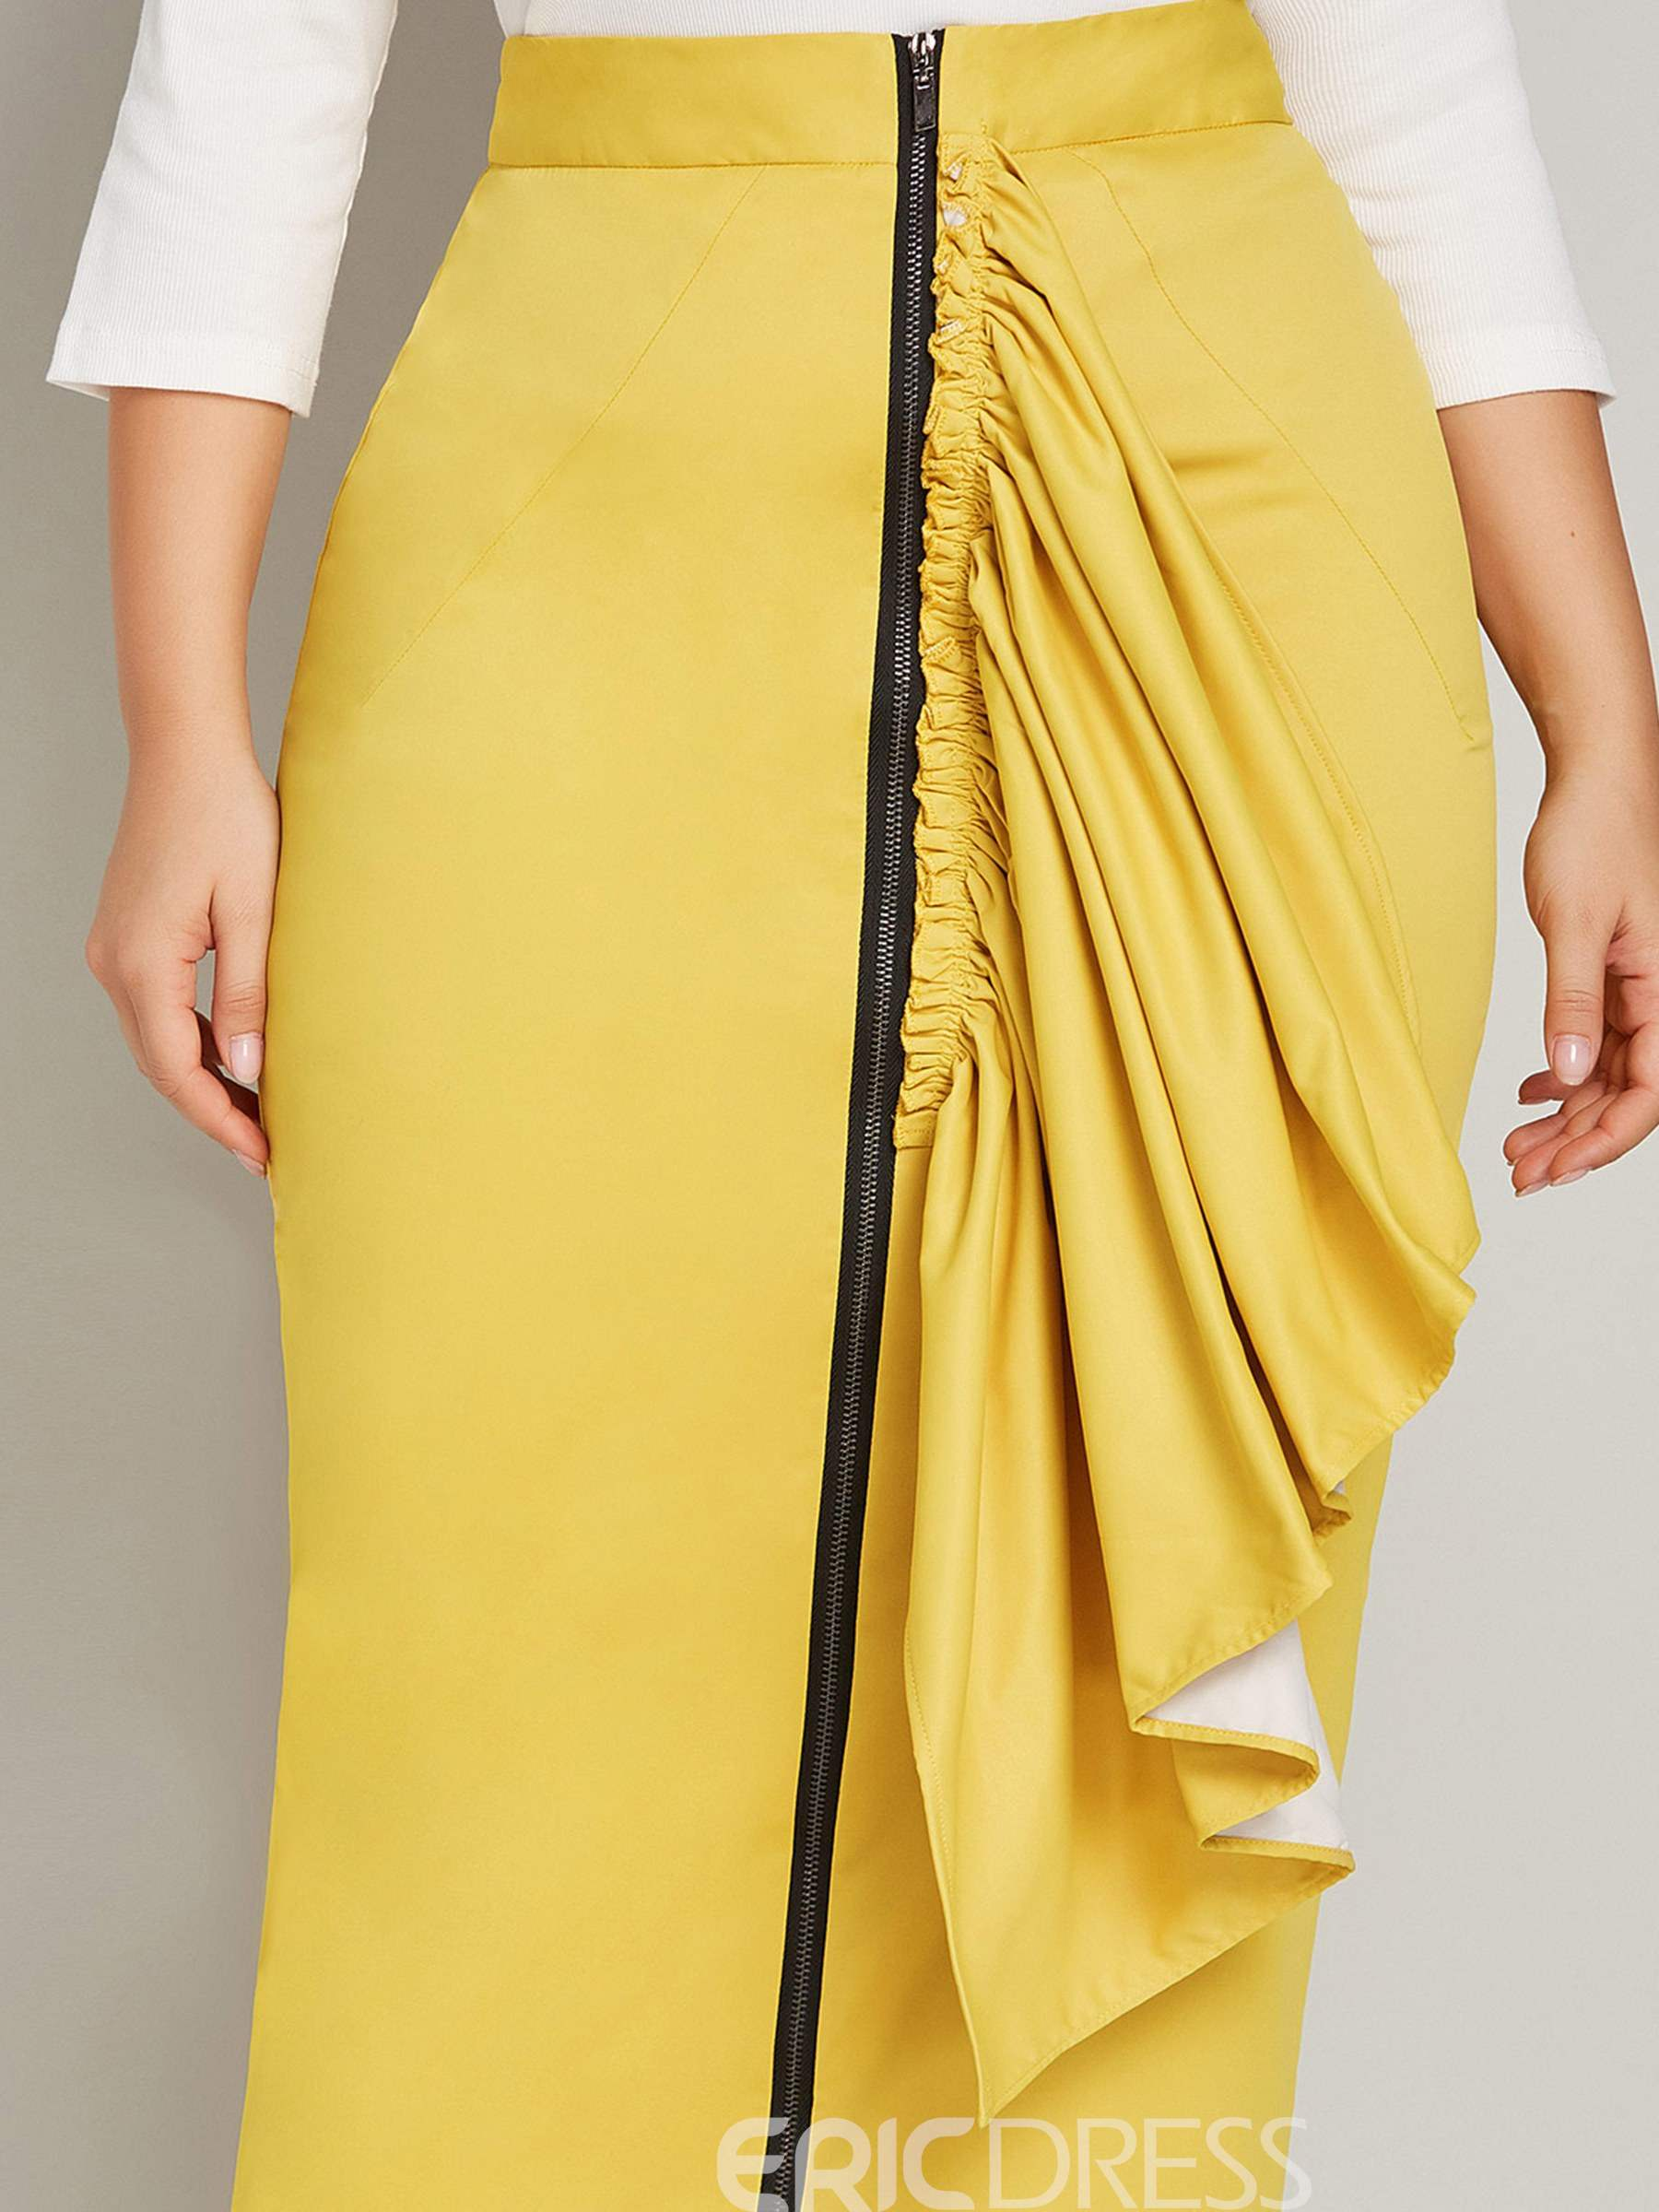 Ericdress Pleated Plusee Women's Pencil Skirt